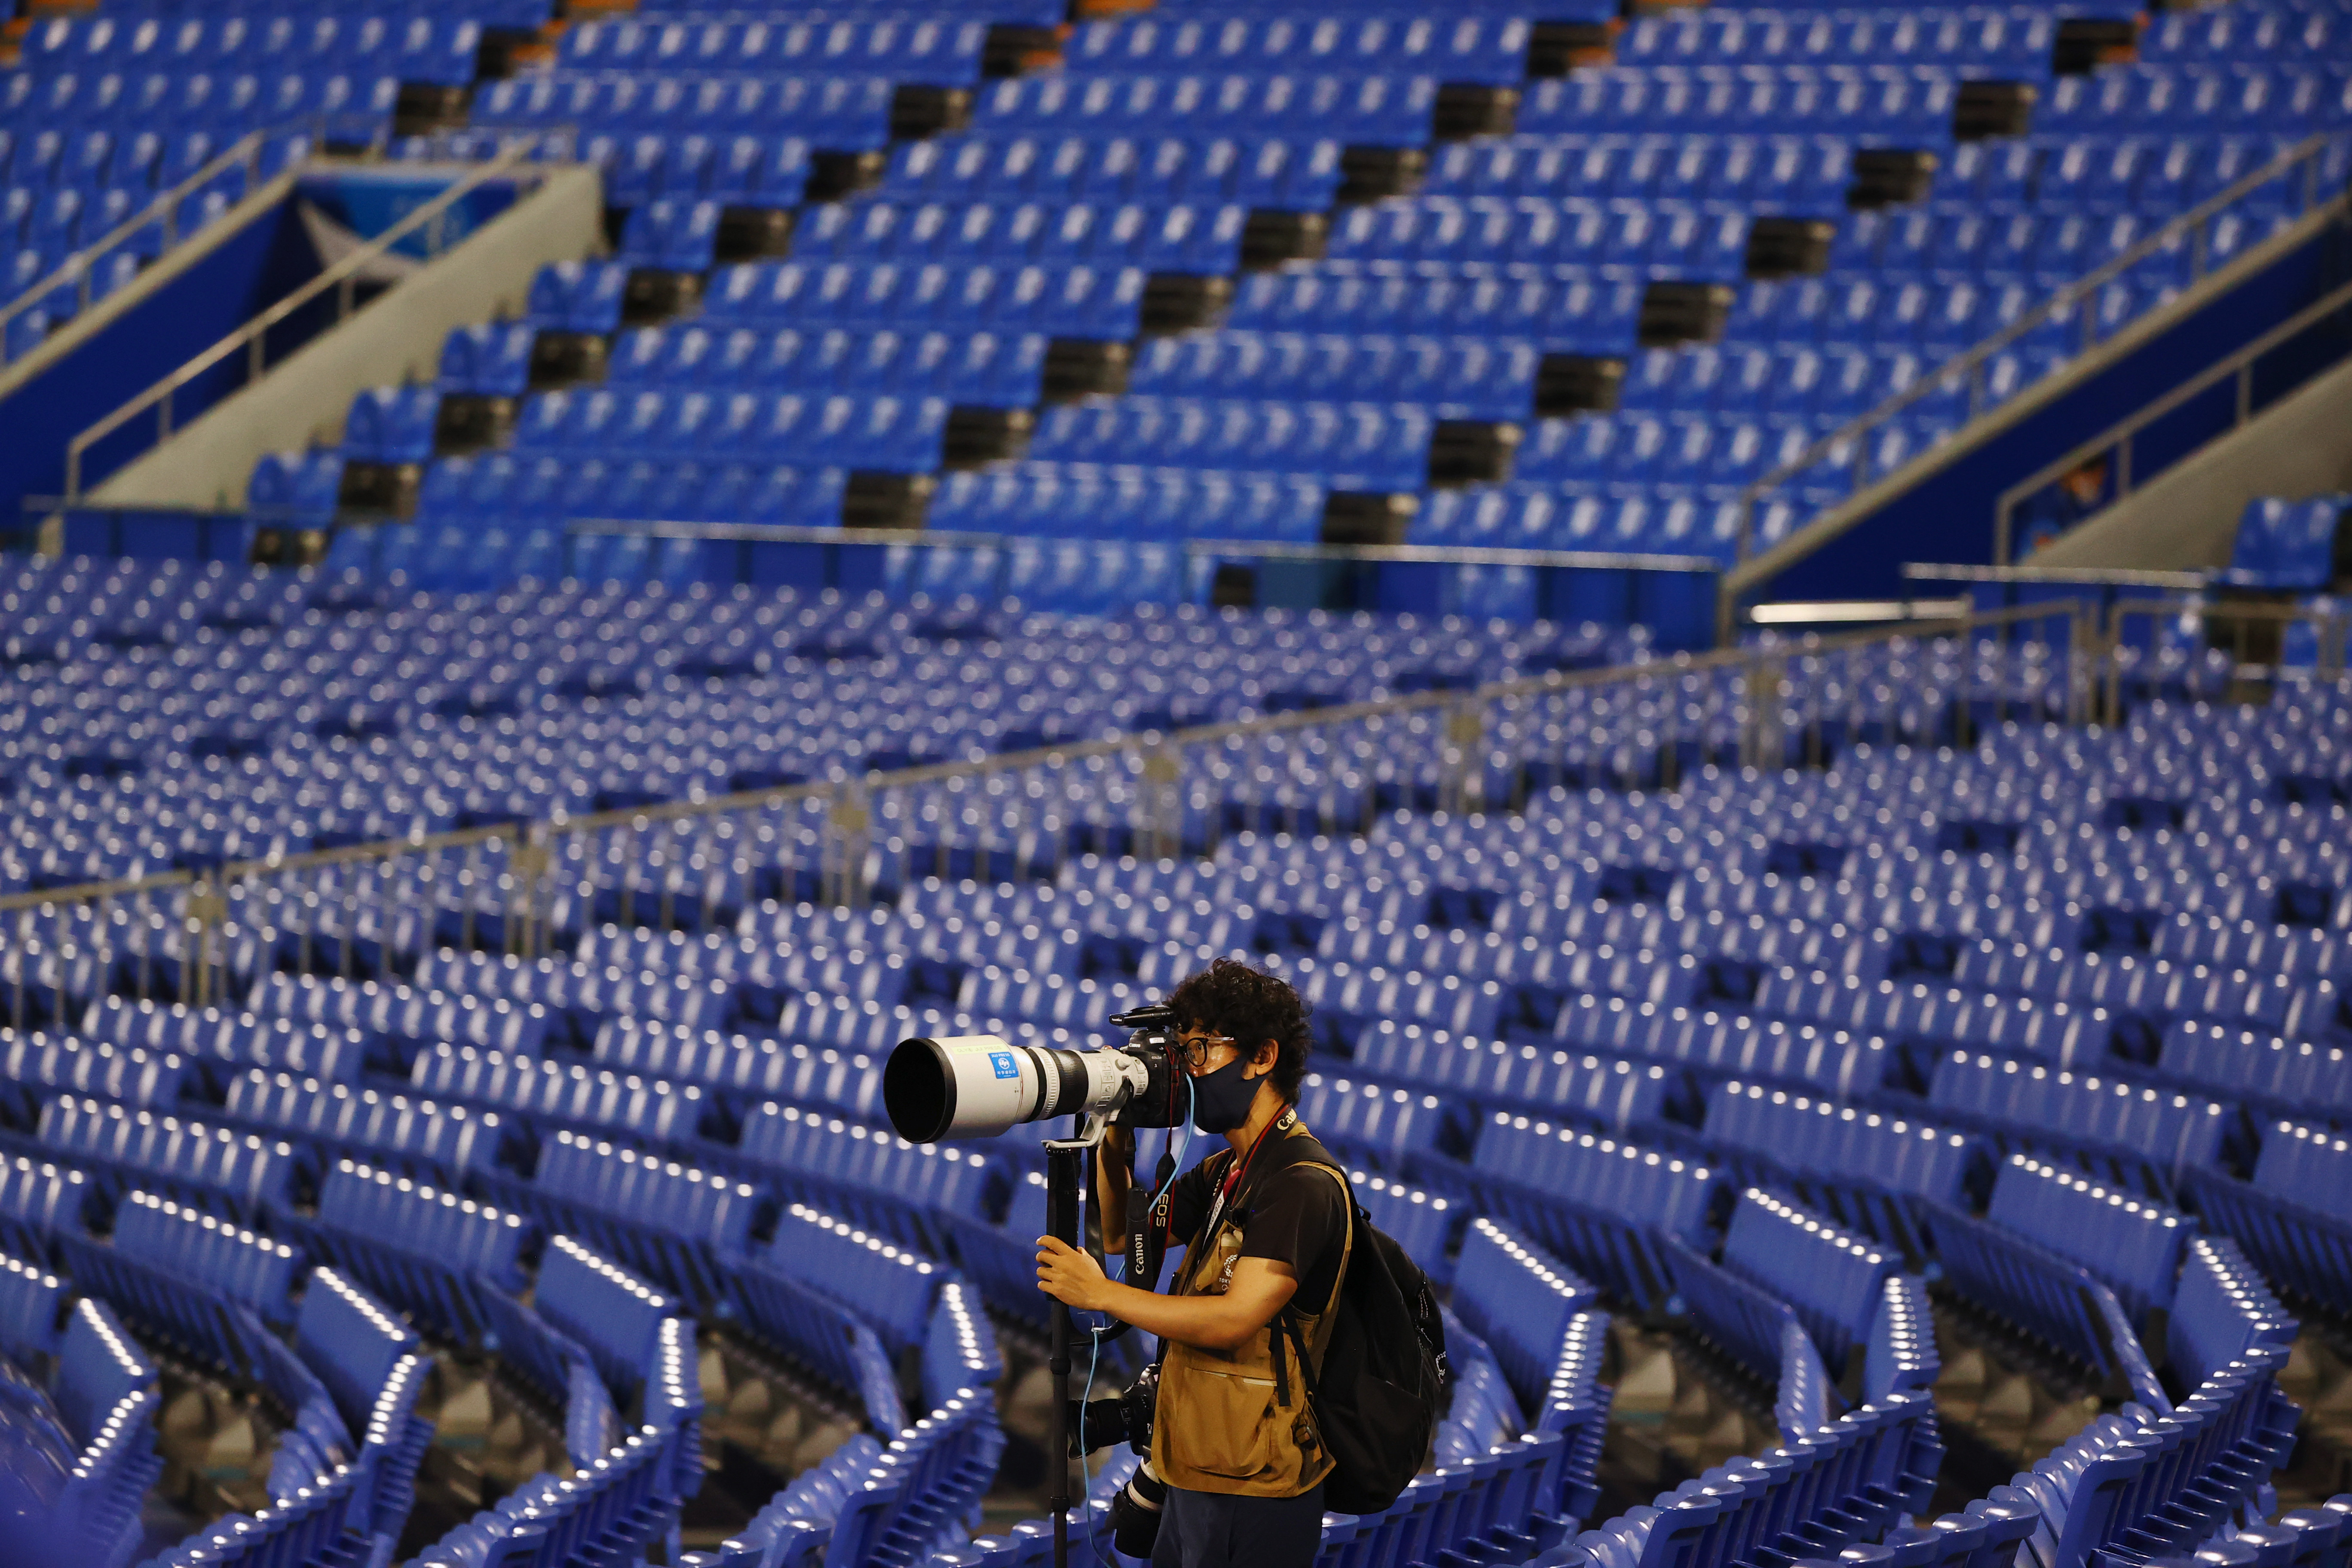 Tokyo 2020 Olympics - Softball - Women - Finals - Gold Medal Game - Japan v United States - Yokohama Baseball Stadium - Yokohama, Japan - July 27, 2021. A lone photographer works between empty seats in the stands as paying spectators are not allowed due to the coronavirus disease (COVID-19) pandemic. REUTERS/Jorge Silva - SP1EH7R0ZCXH7